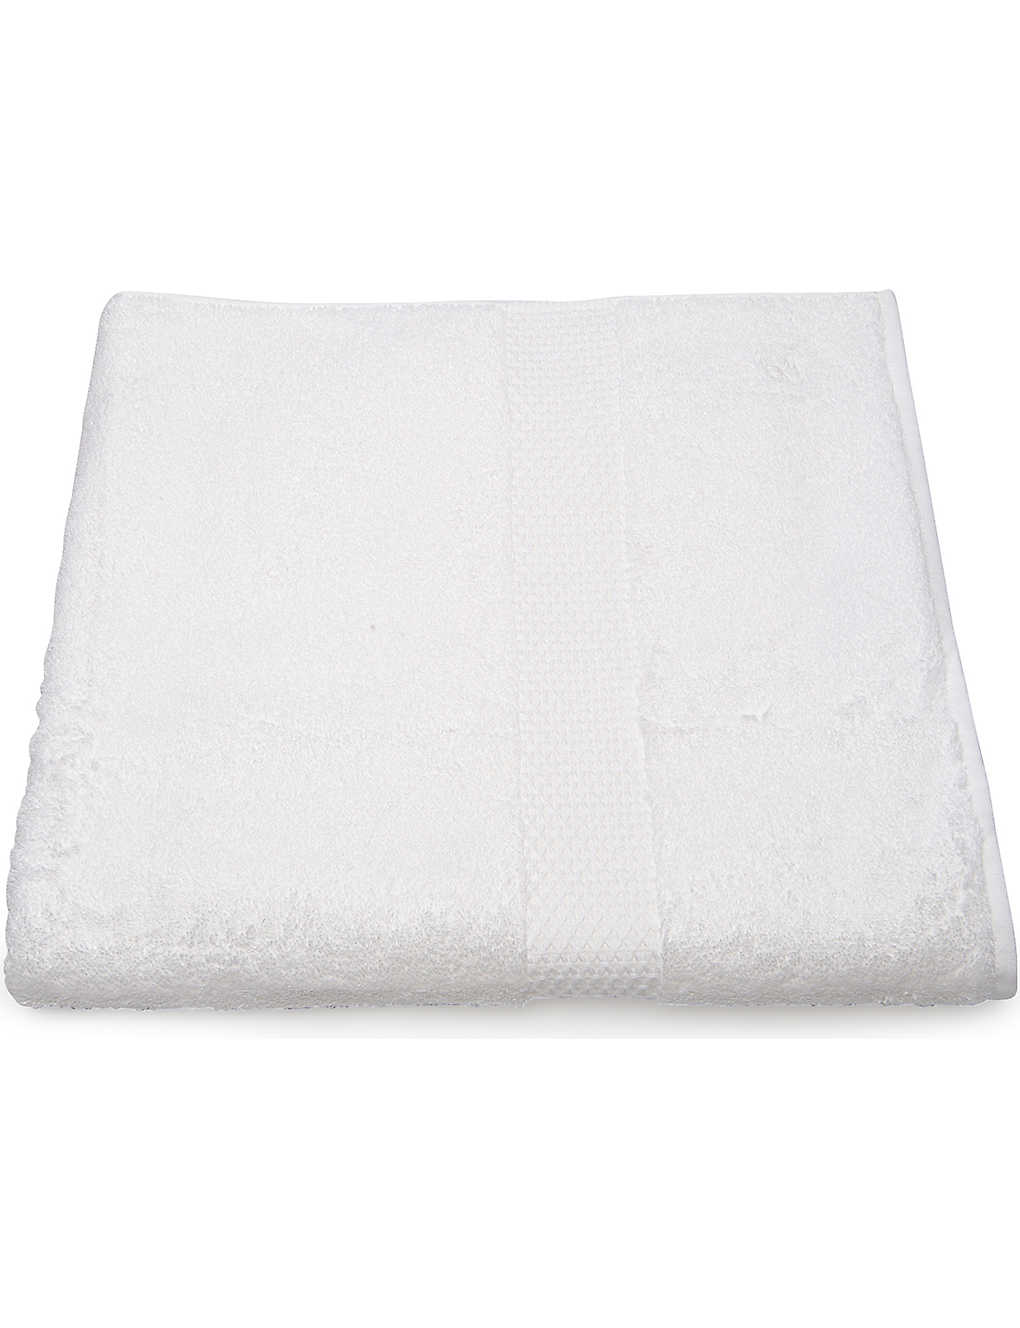 YVES DELORME: Etoile hand towel white